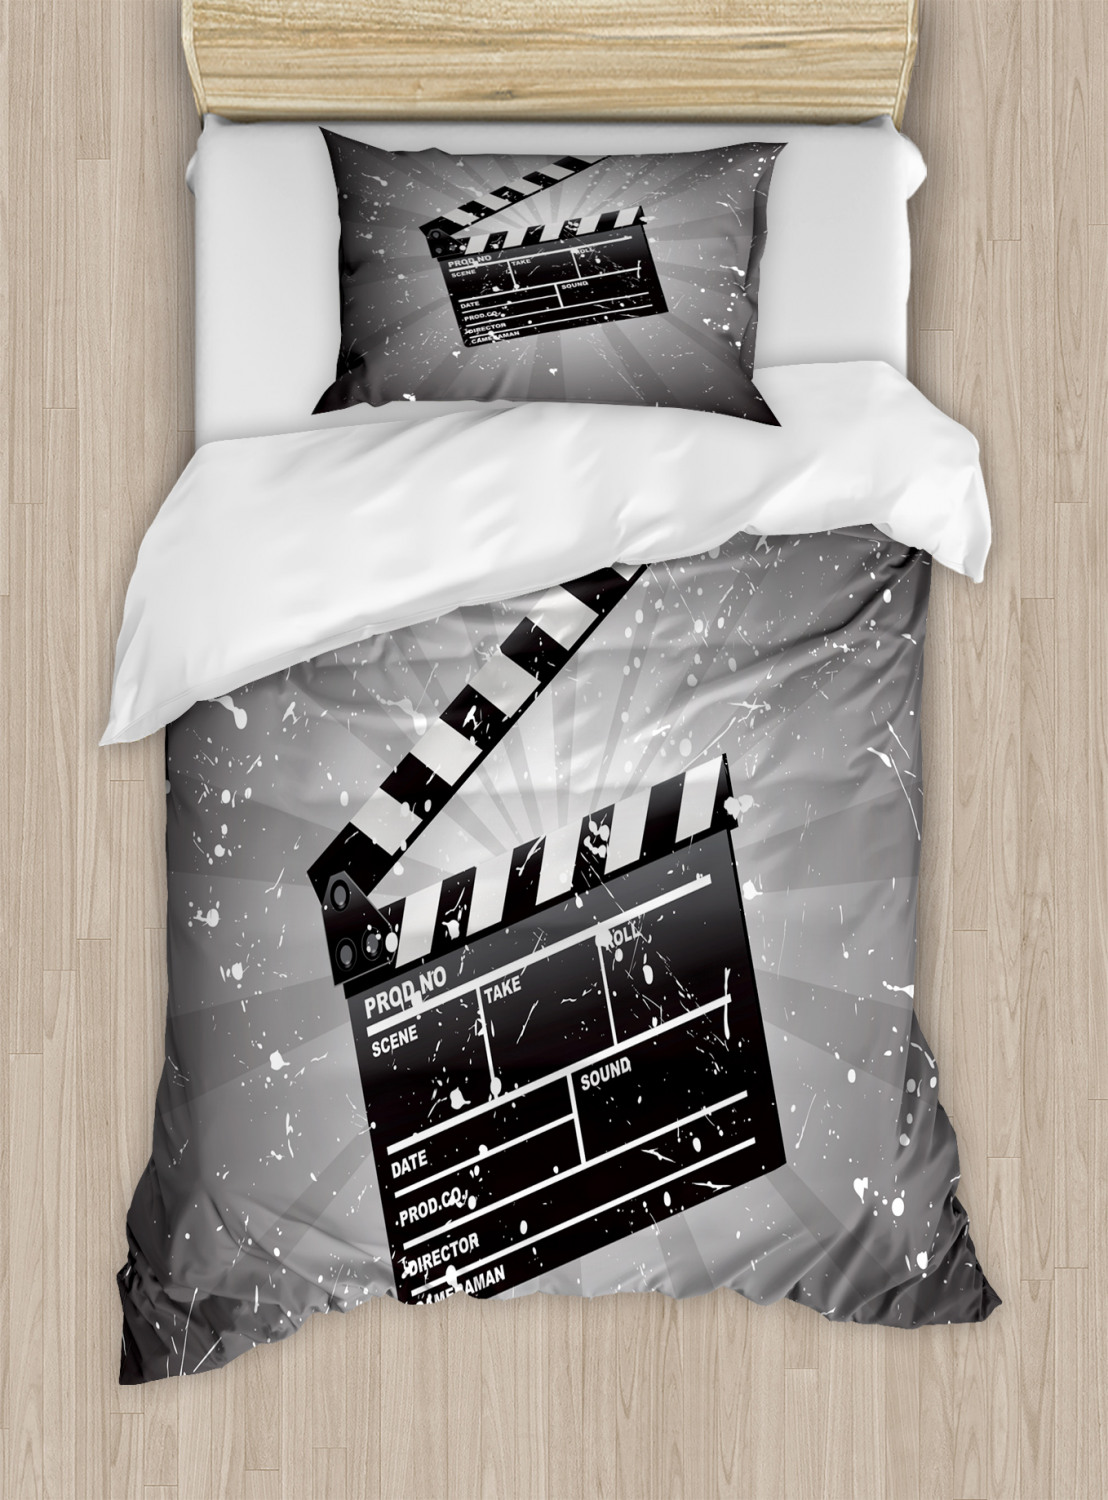 Movie-Theater-Duvet-Cover-Set-with-Pillow-Shams-Clapper-Board-Print miniature 6